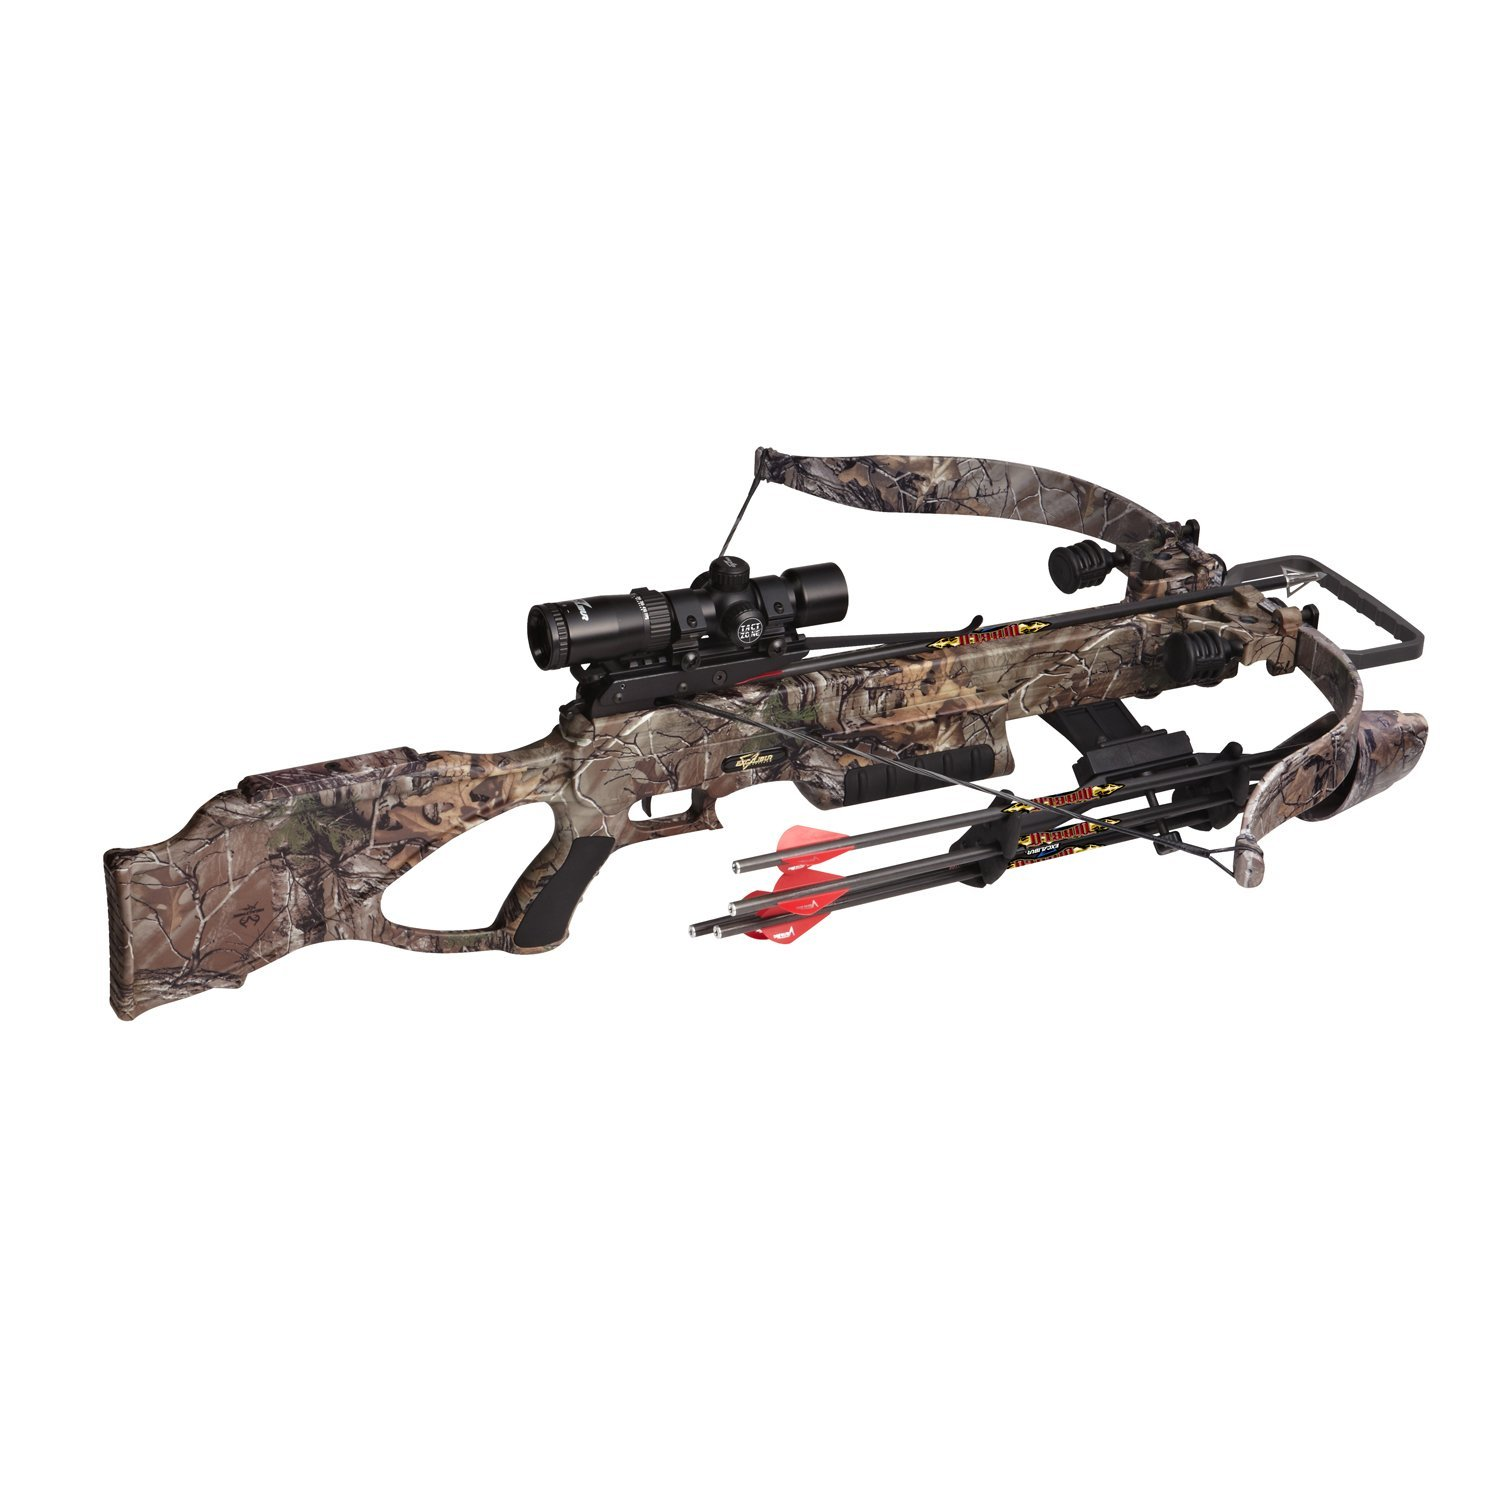 Excalibur Matrix 380 Extra Crossbow Package